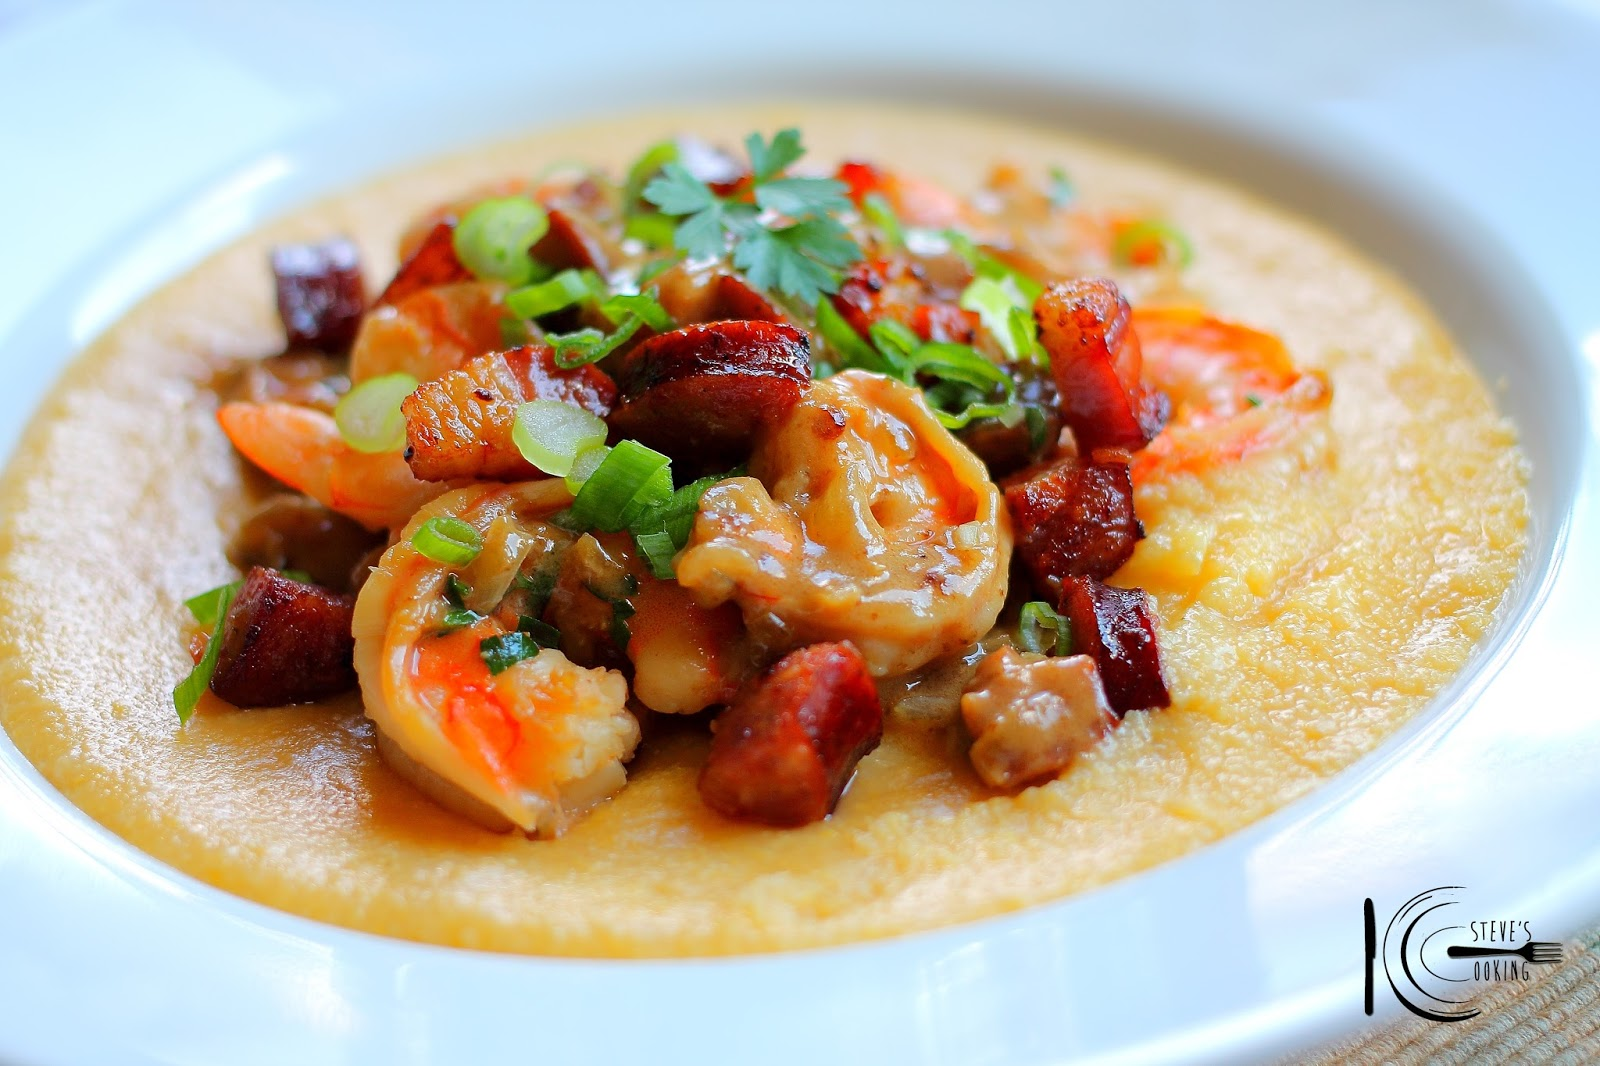 Shrimp and Pancetta over Soft Polenta by Steven Dolby